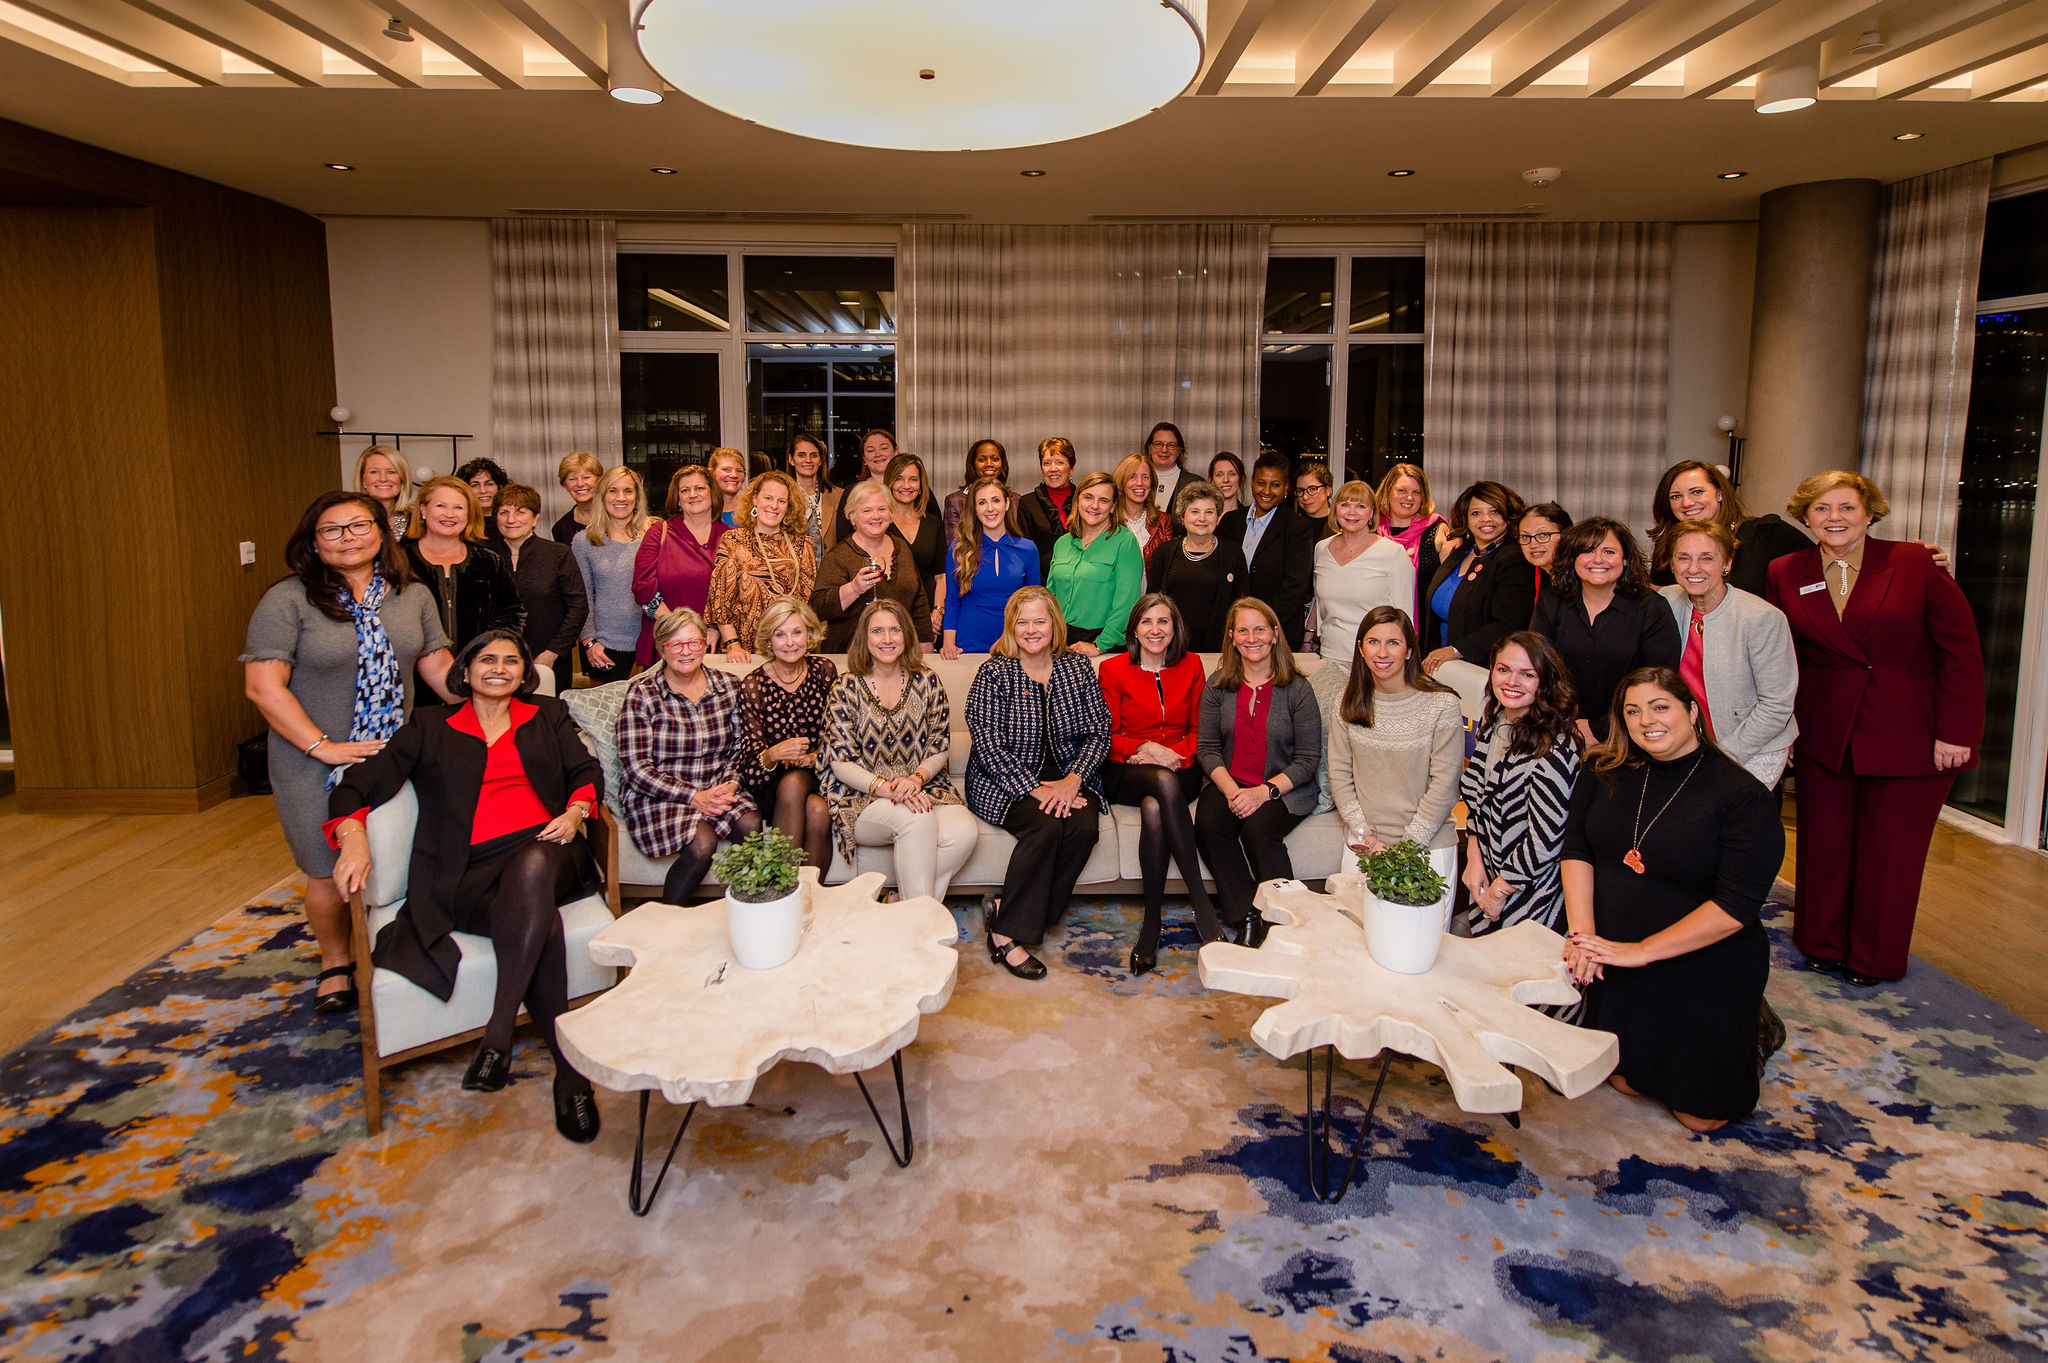 Women United members gather for a group photo